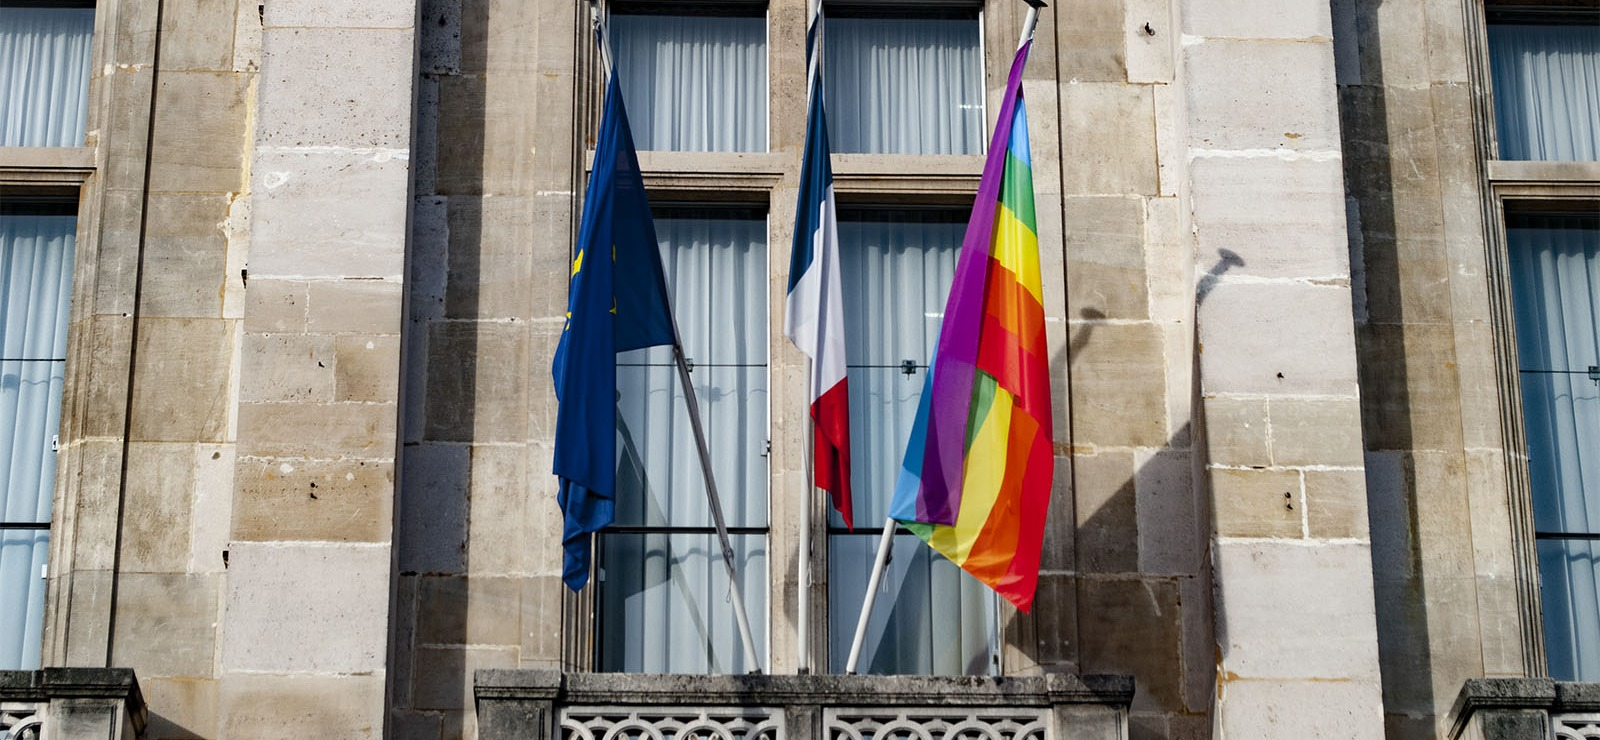 La ville de Saint-Denis s'engage contre les discriminations des LGBT